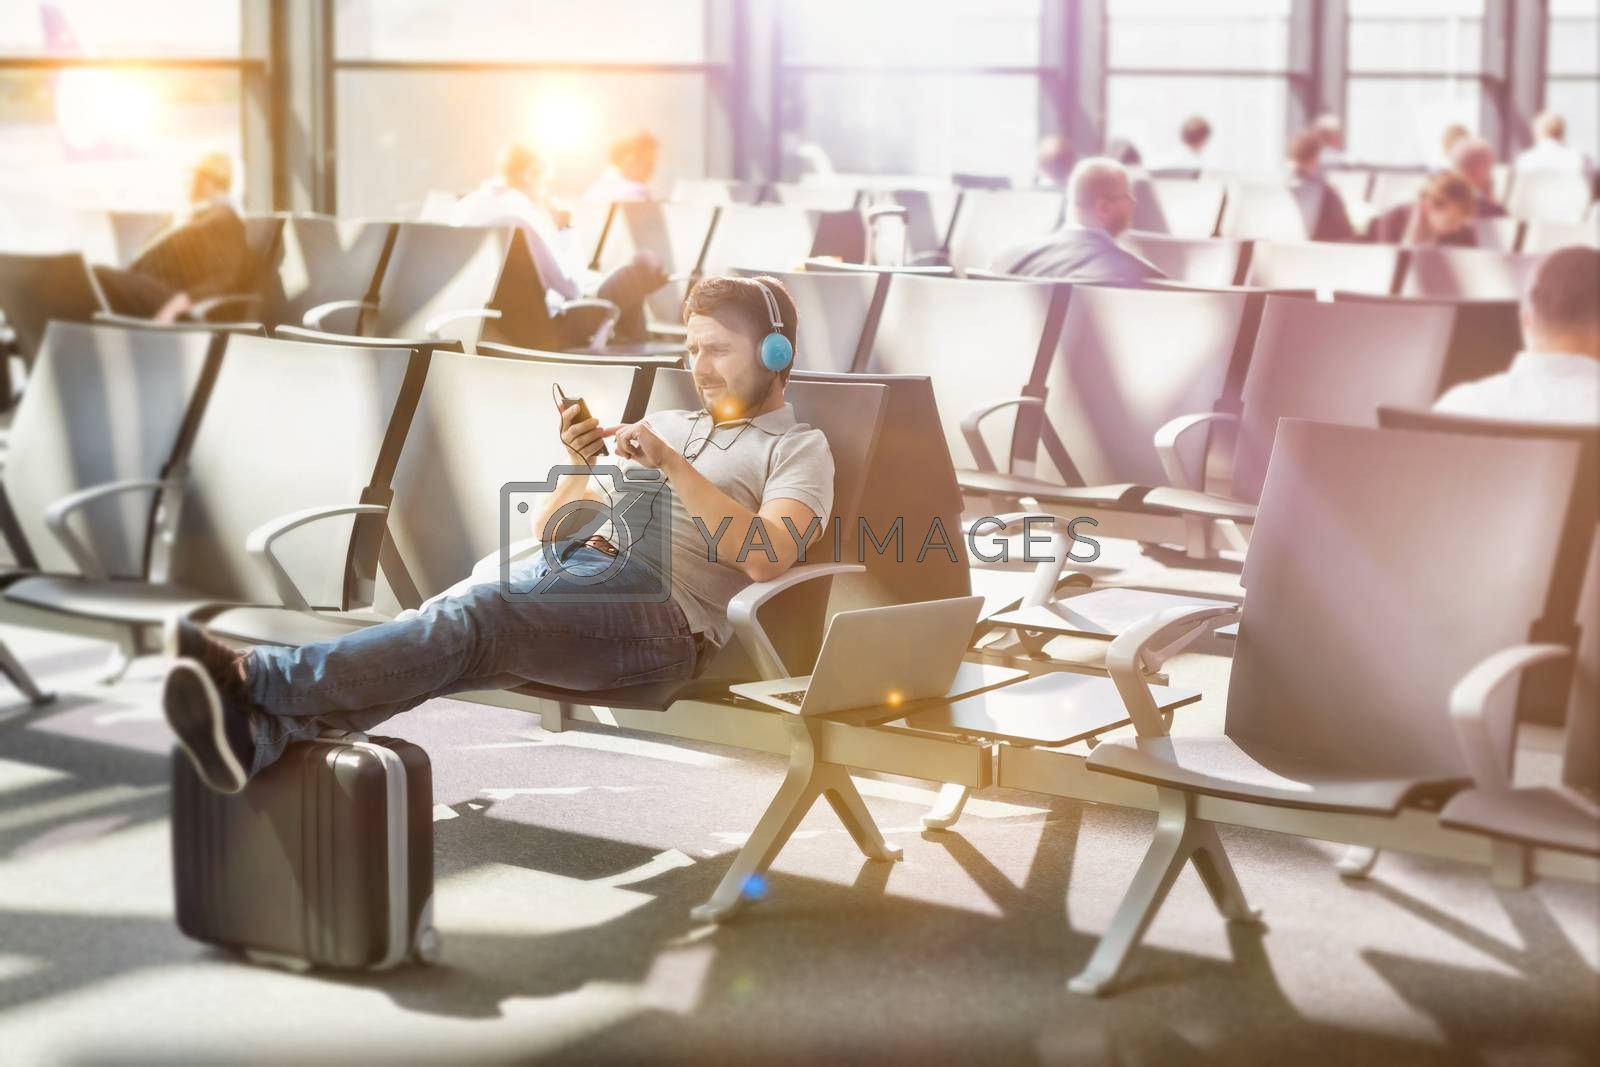 Portrait of man using smartphone with headphones on while waiting for boarding in airport